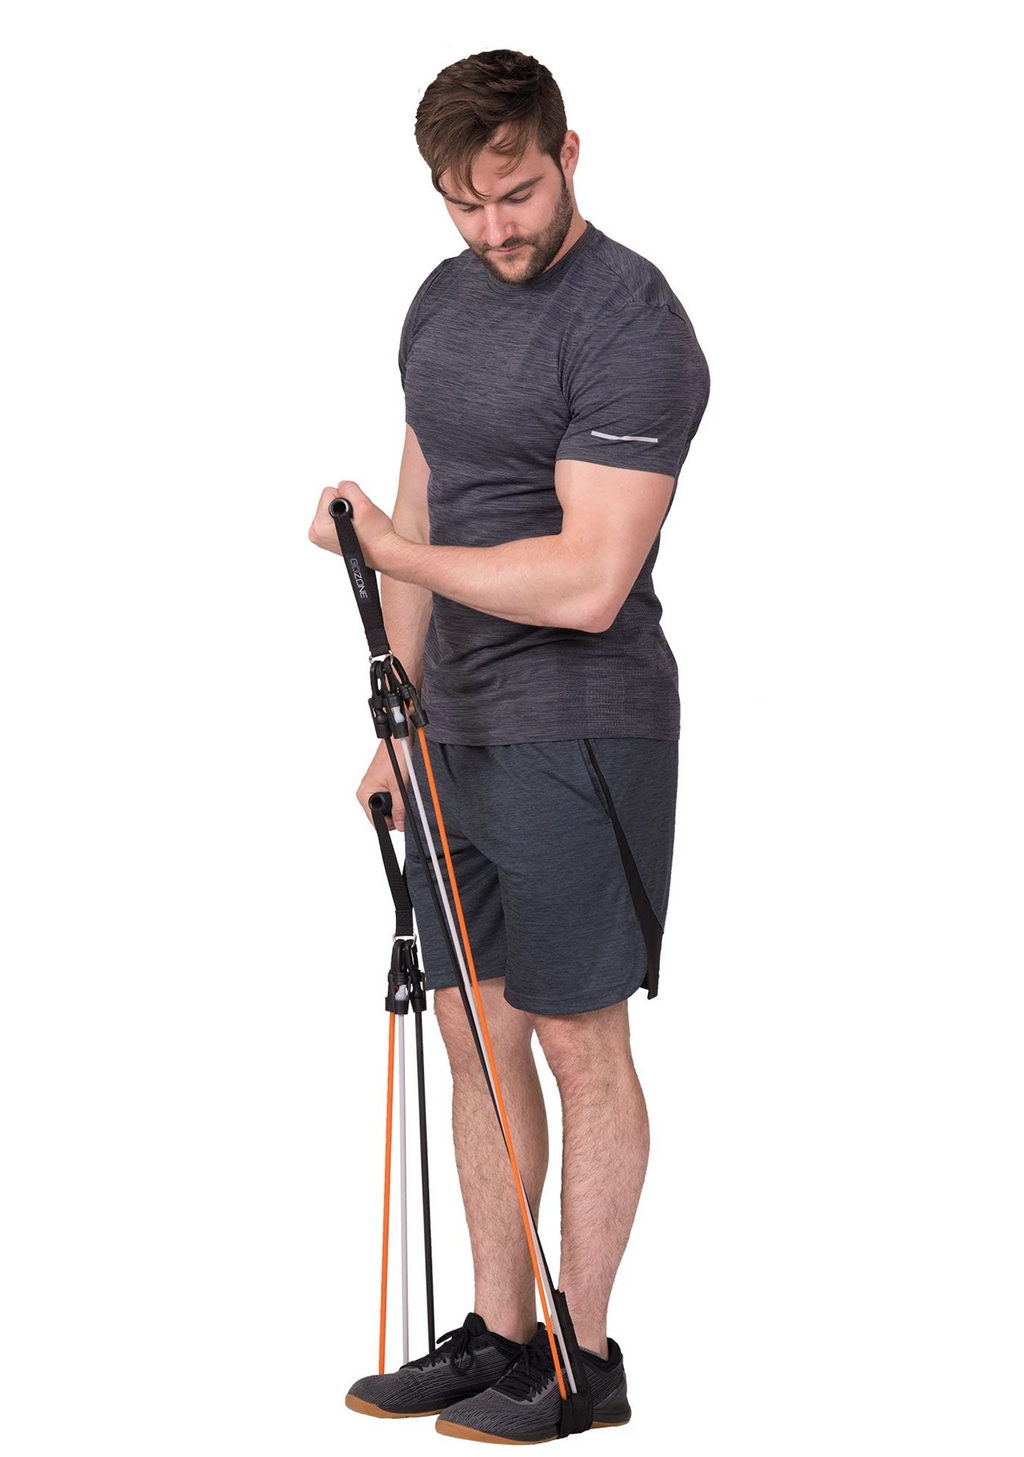 GOZONE 3 IN 1 RESISTANCE BANDS <br> GZE2068